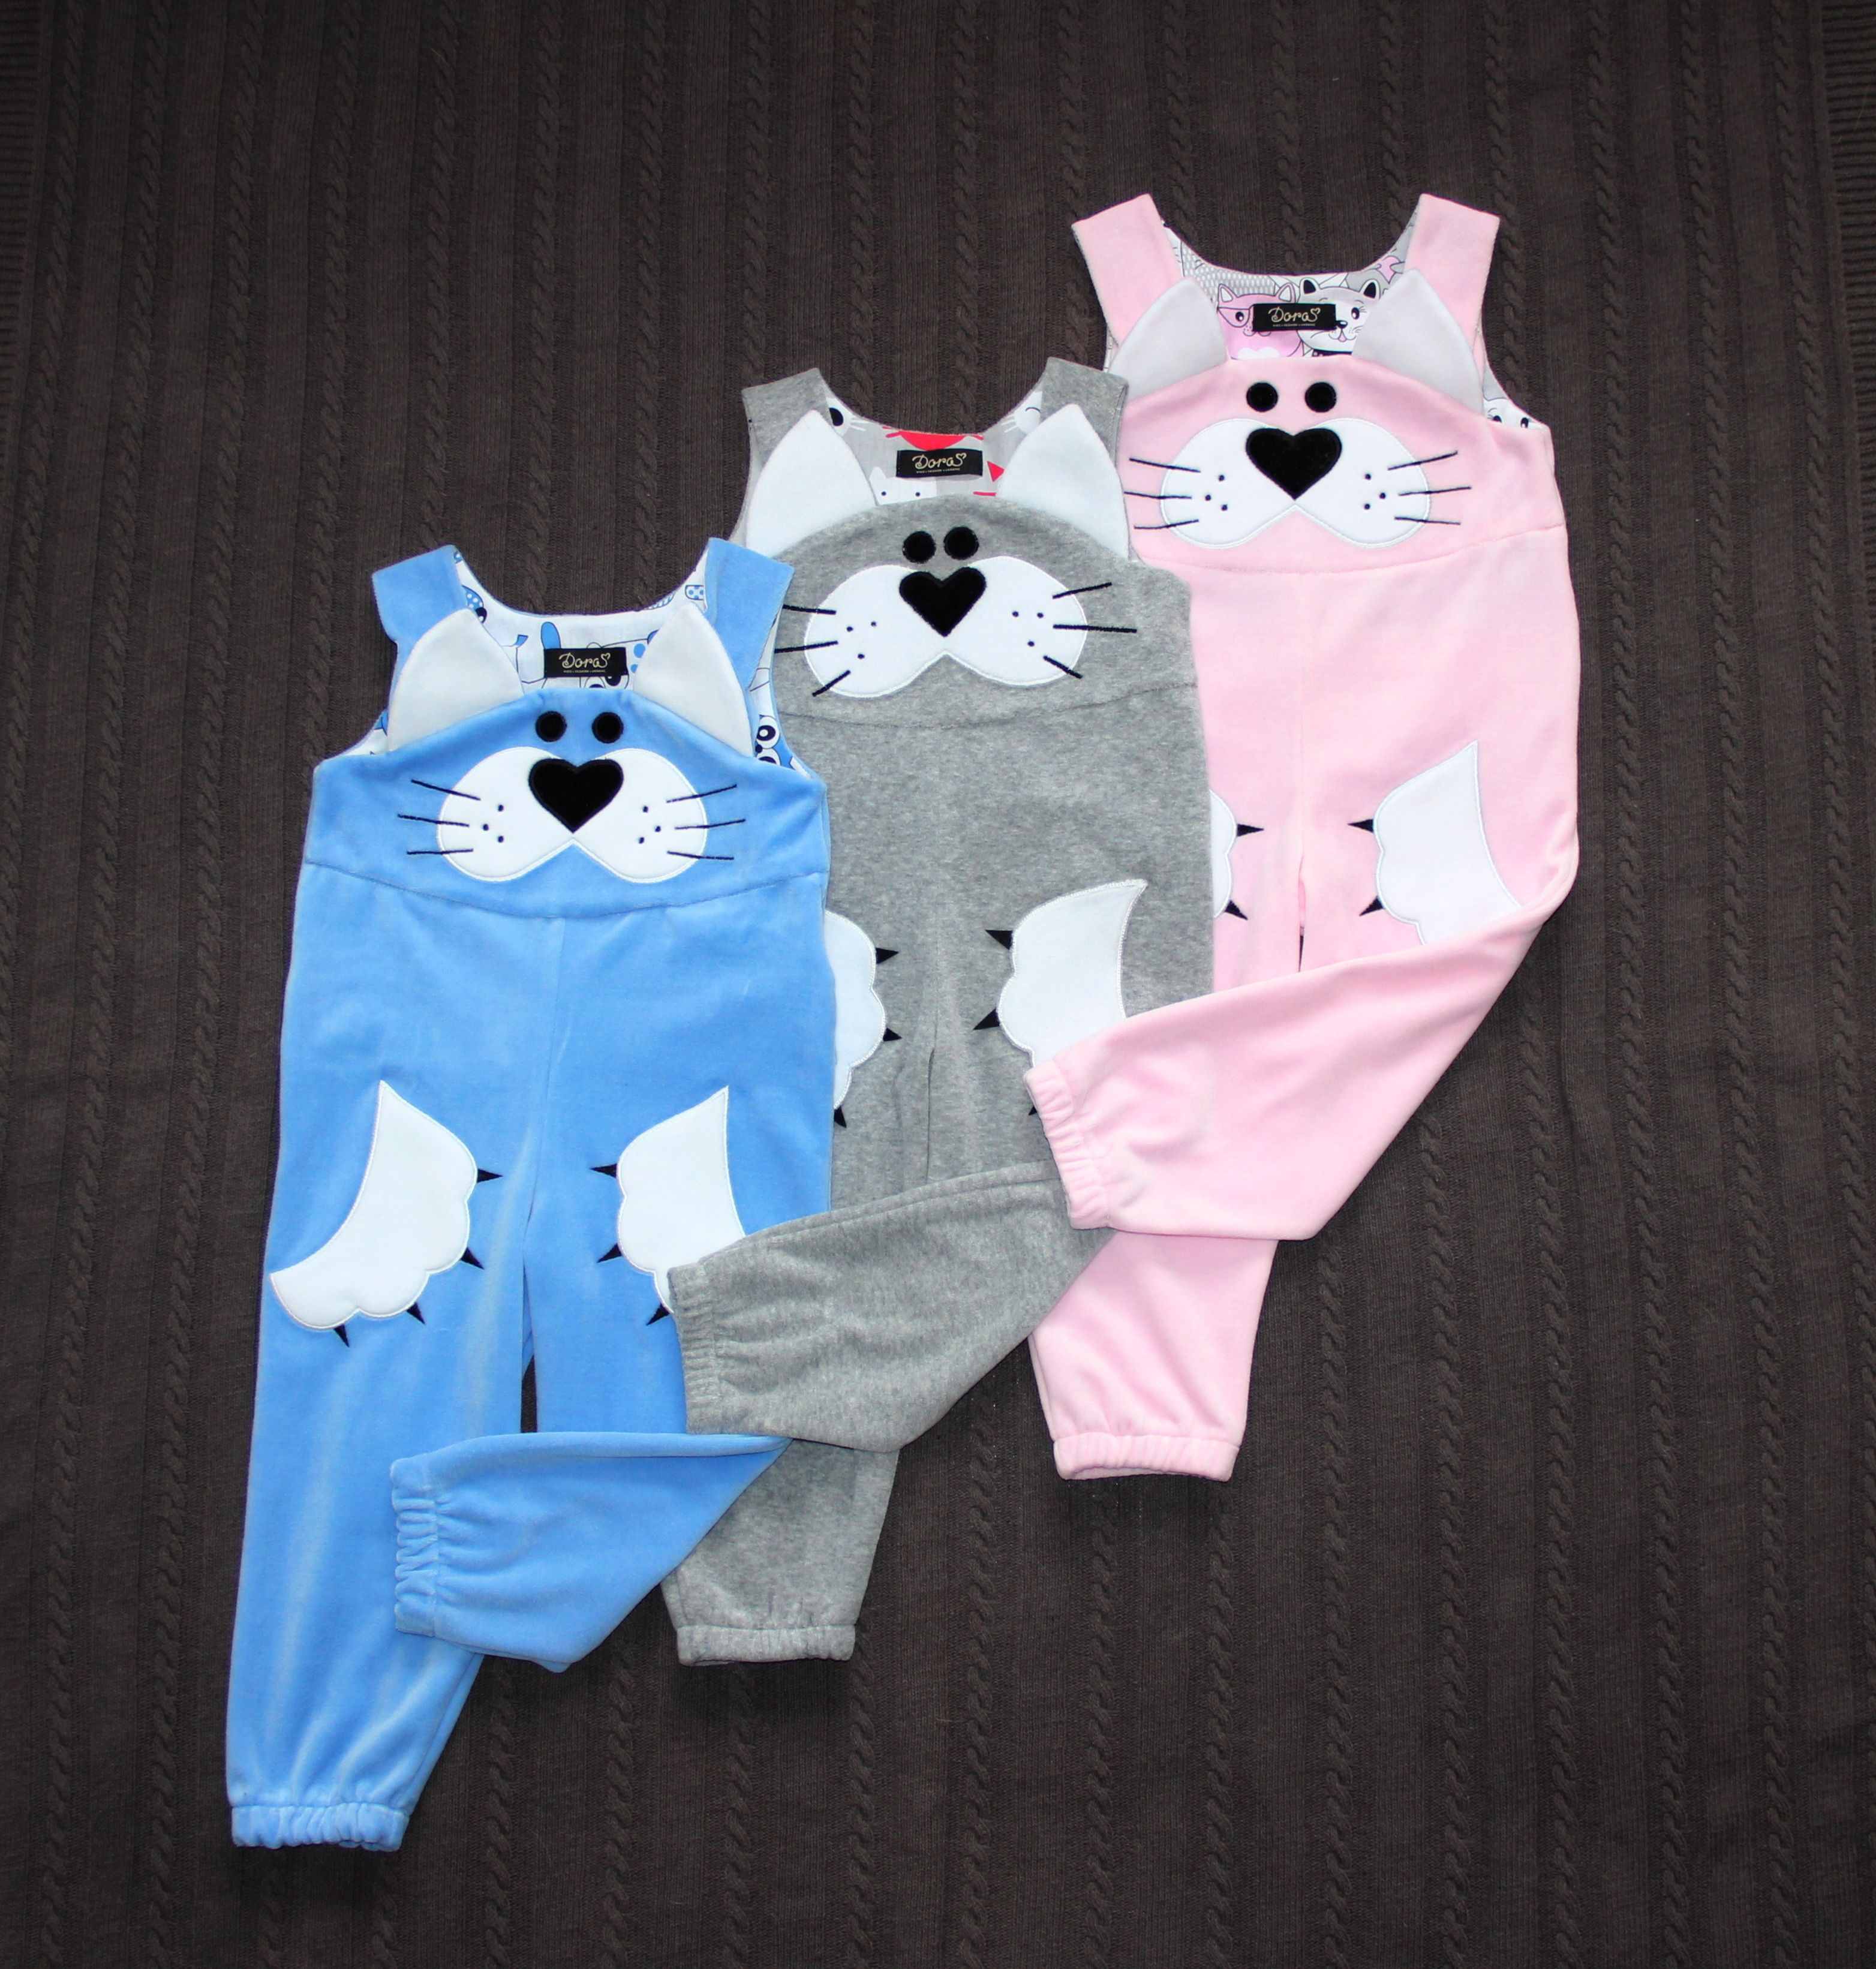 Toddler Outfit Pink Cat Removable Tail Kitty Costume Girl Animal Clothes Jon Jons Baby Girl Kitten Costumes Toddler Outfits Baby Boy Outfits